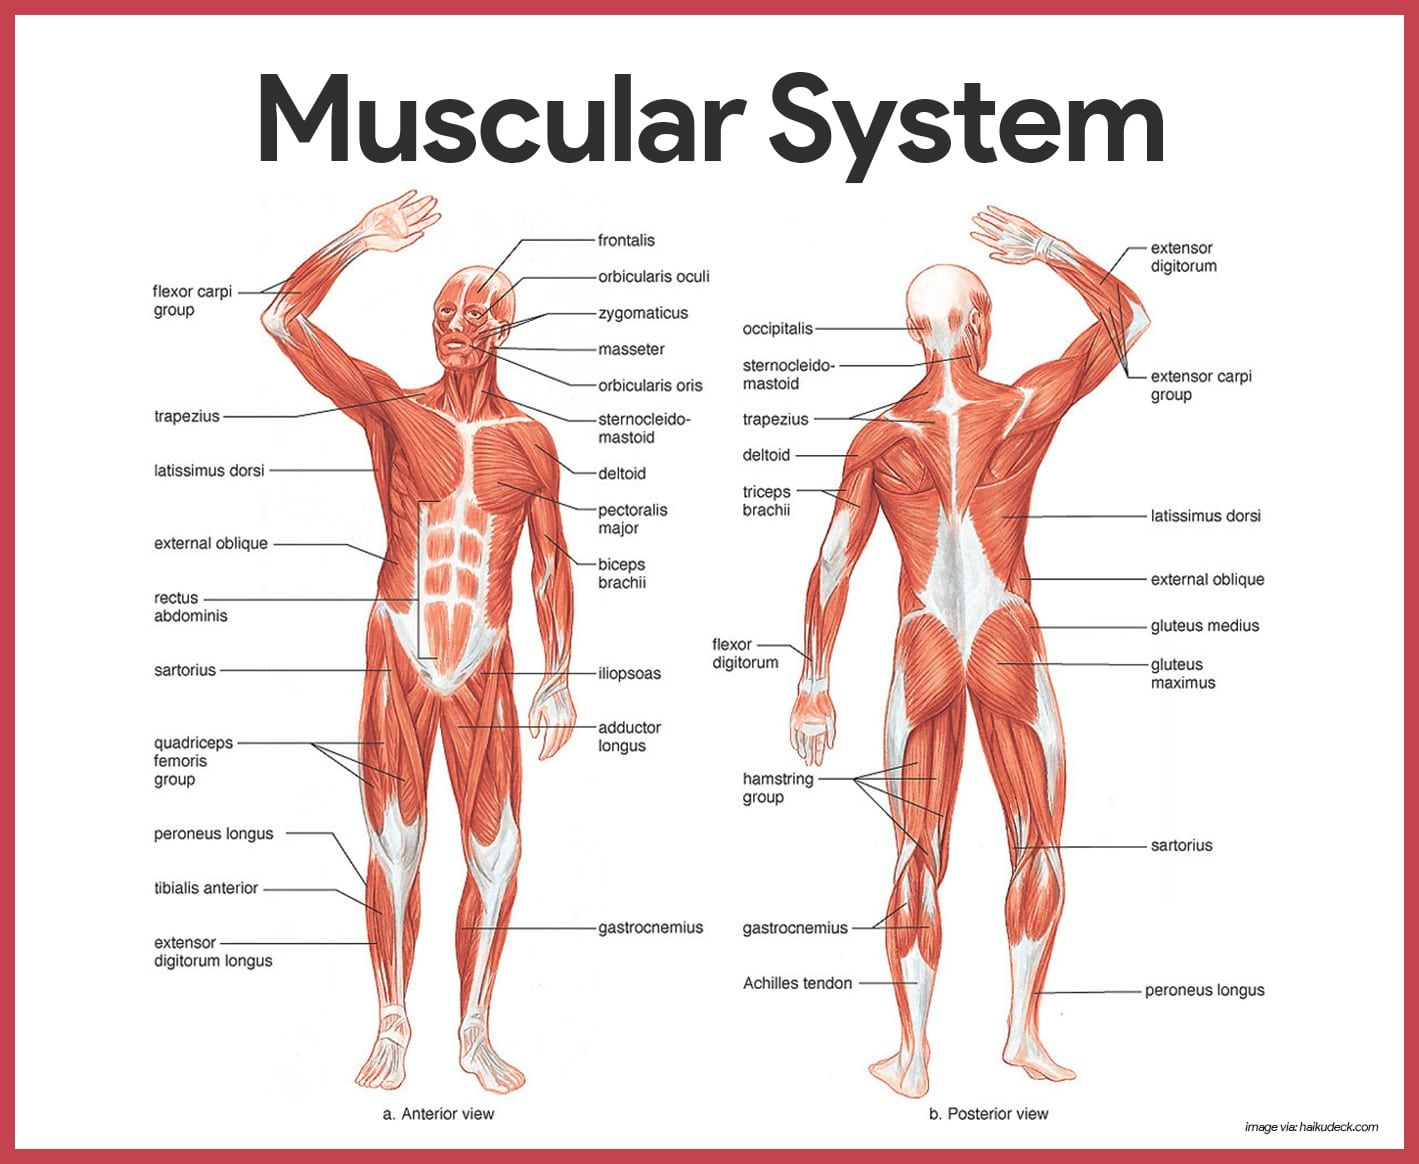 Muscle System Diagram Koibana Info Muscular System Anatomy Muscular System Human Muscular System